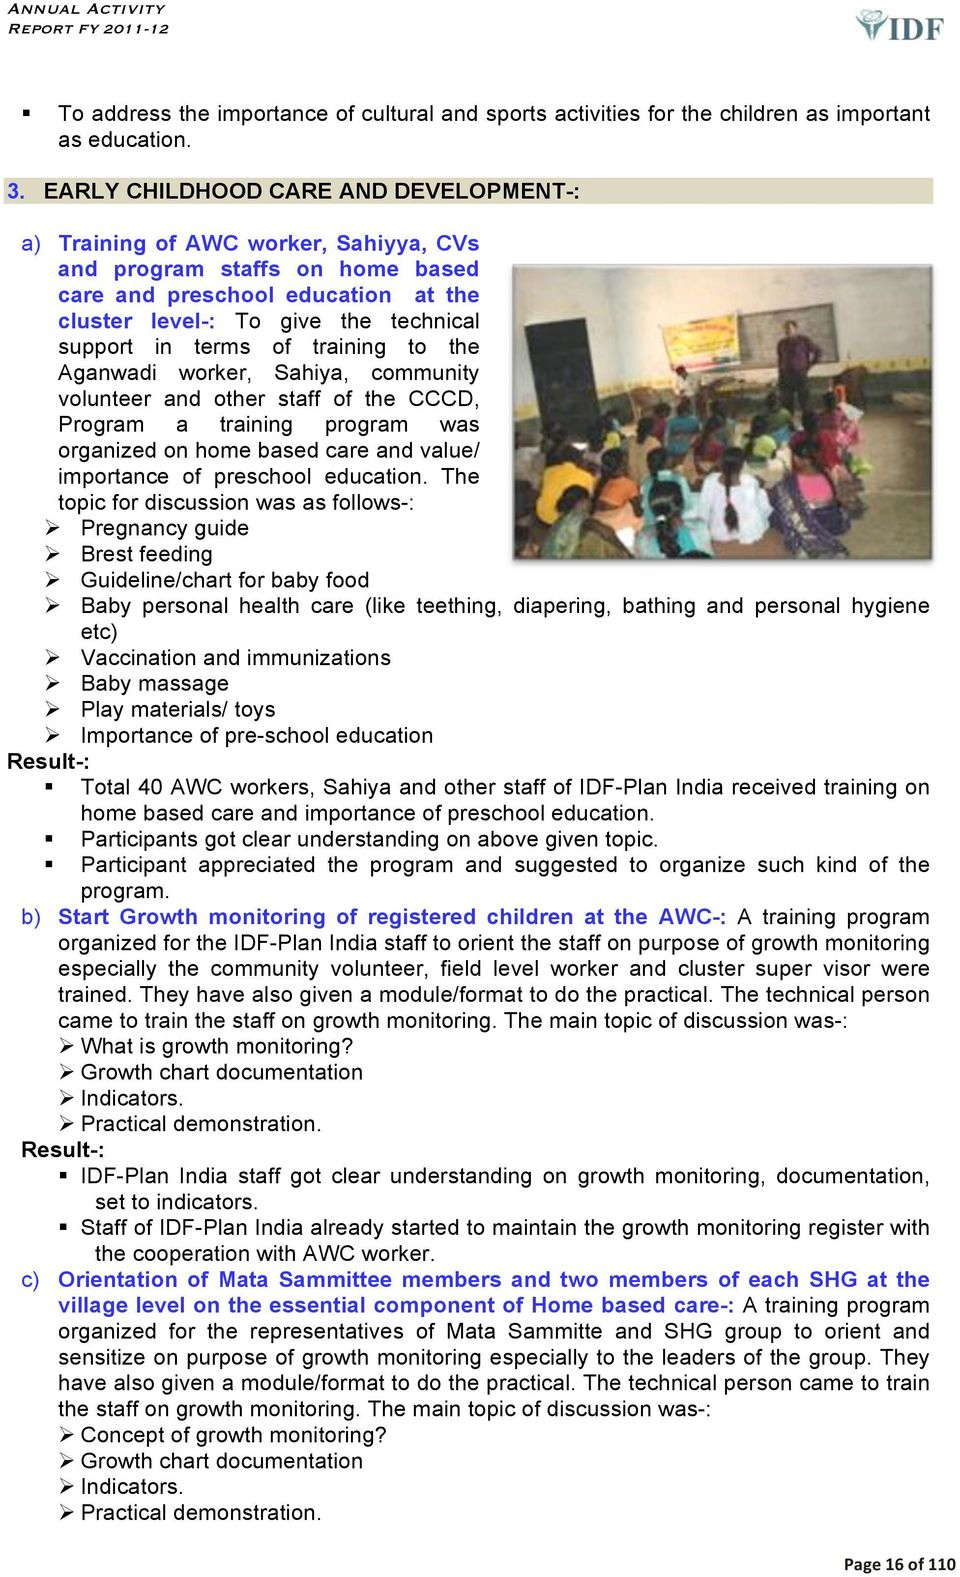 terms of training to the Aganwadi worker, Sahiya, community volunteer and other staff of the CCCD, Program a training program was organized on home based care and value/ importance of preschool